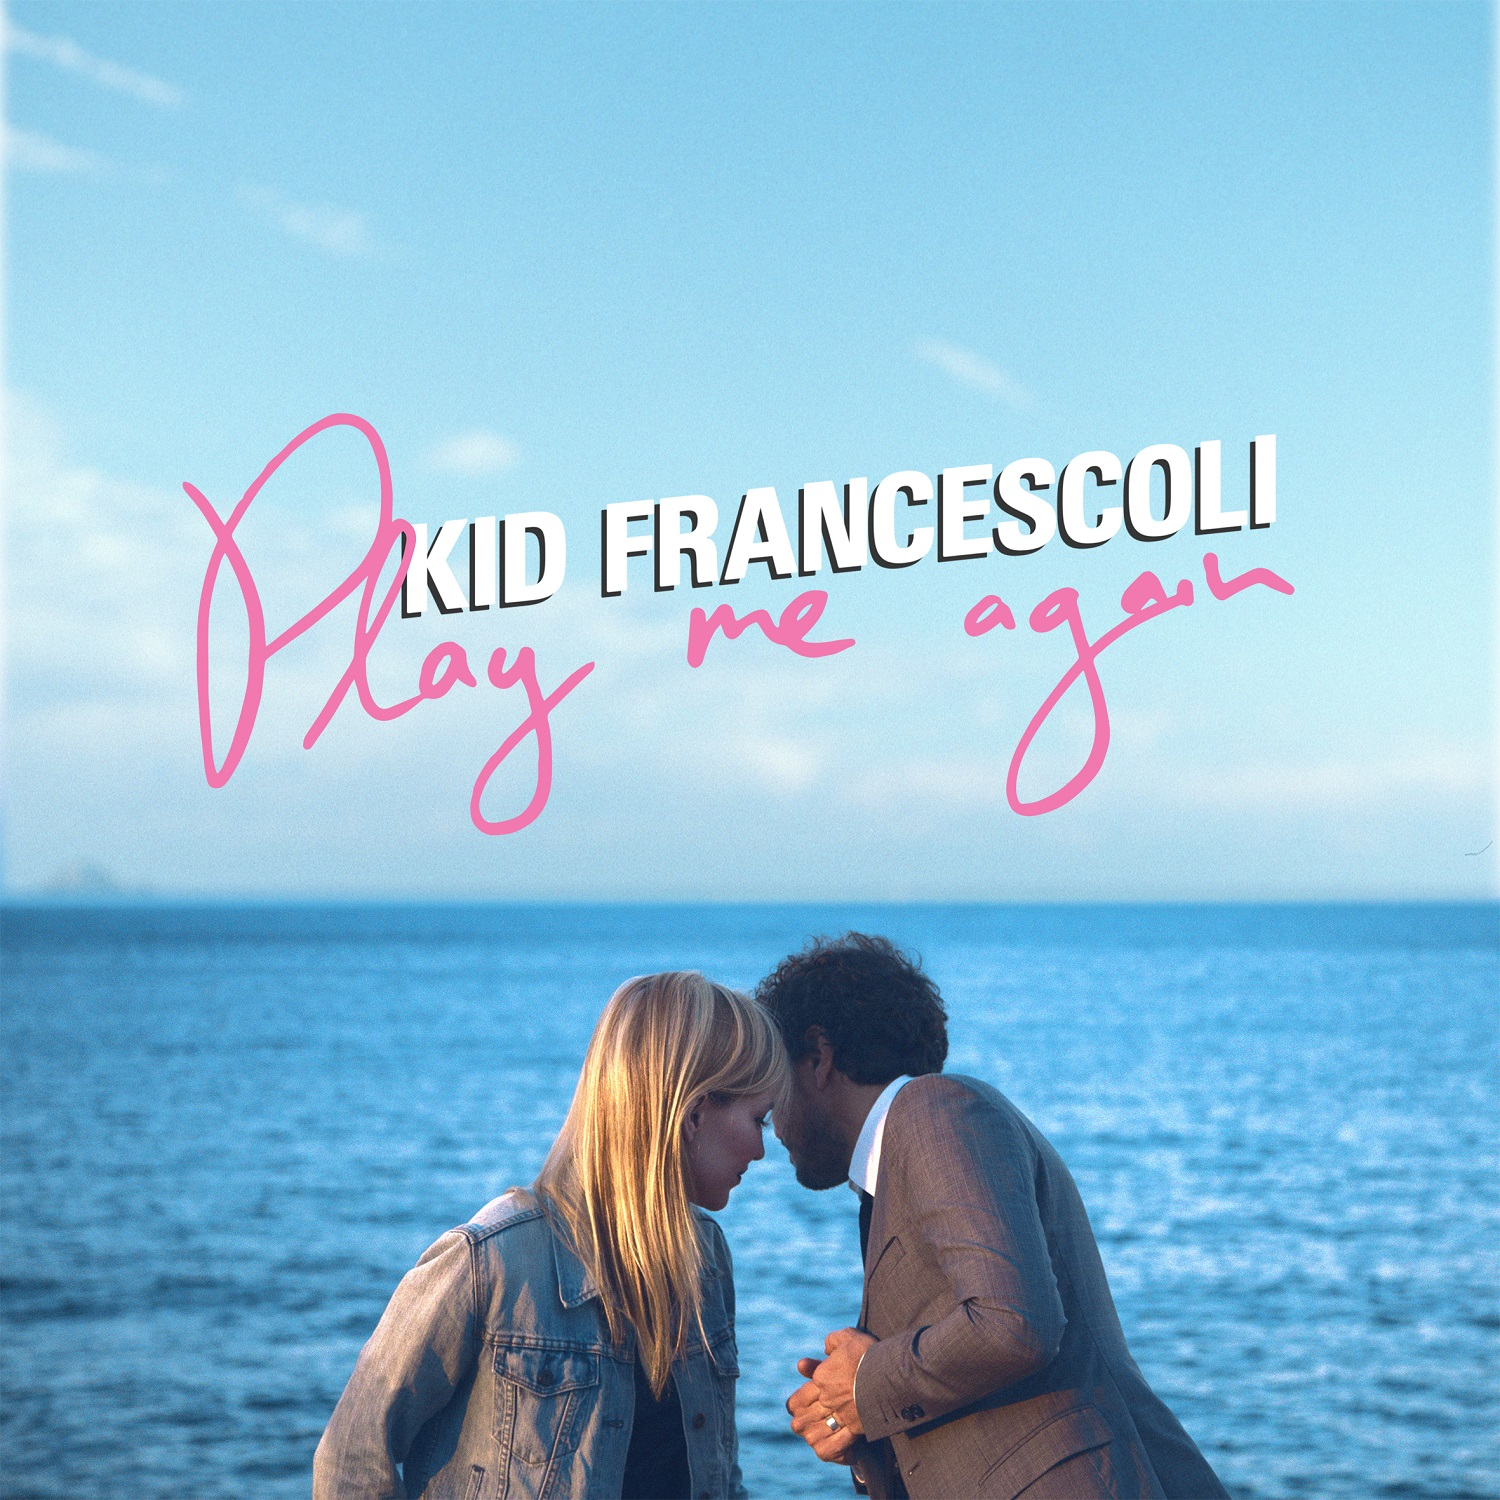 Kid-Francescoli_Ply-Me-Again_ modzik